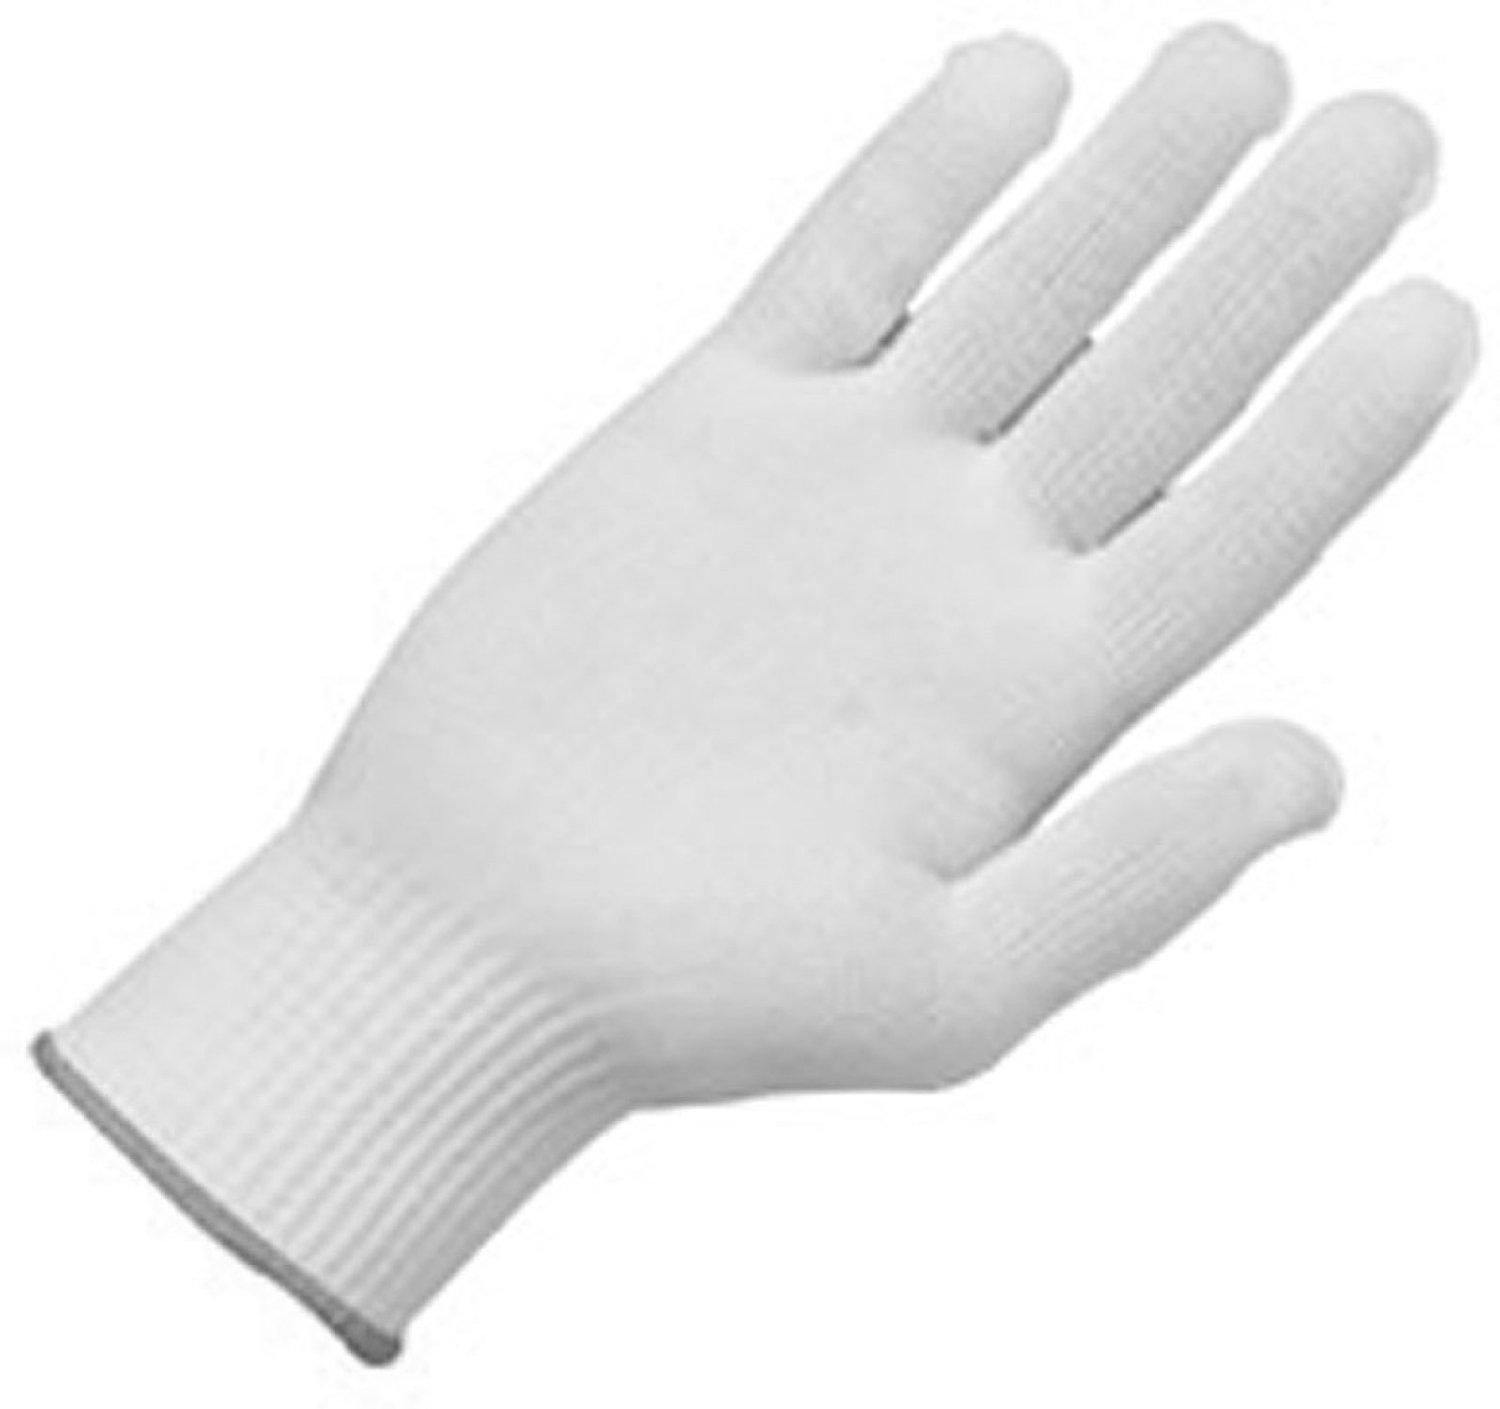 Gloves GN025 12 Pair Full Finger Gloves, Glove Liner, 10 Gram Nylon Construction